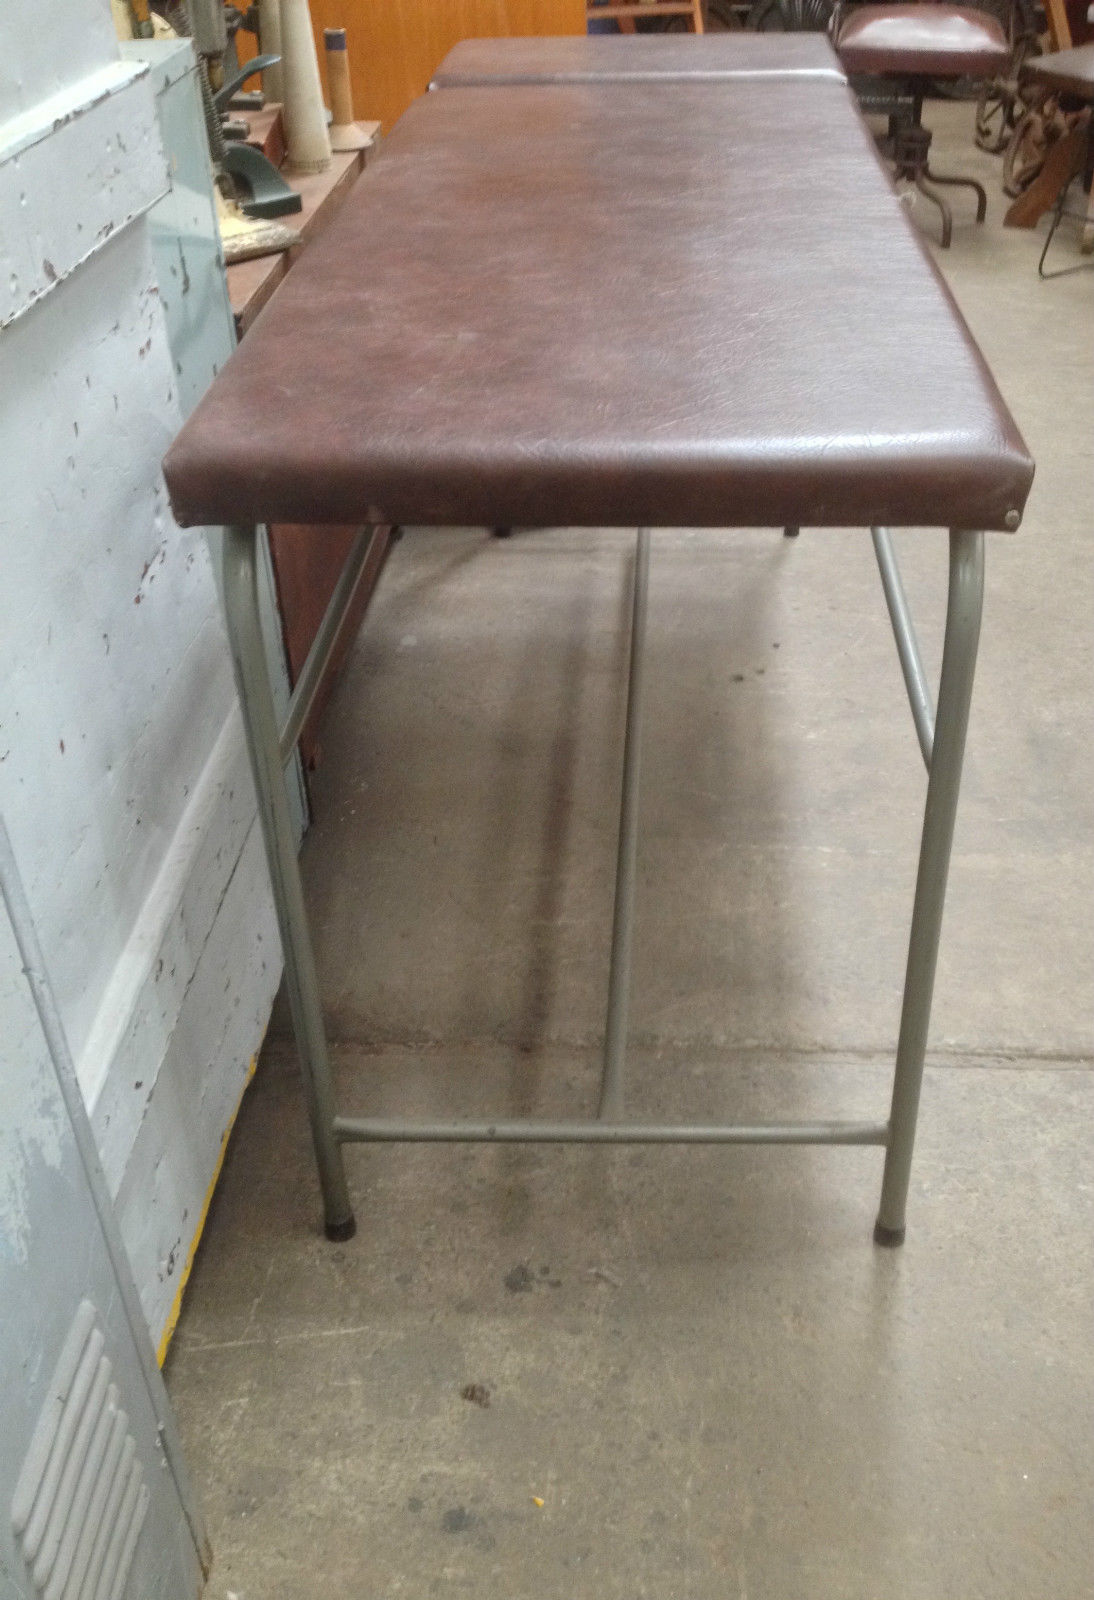 Vintage Massage Table | Melbourne | Halsey Road Recyclers